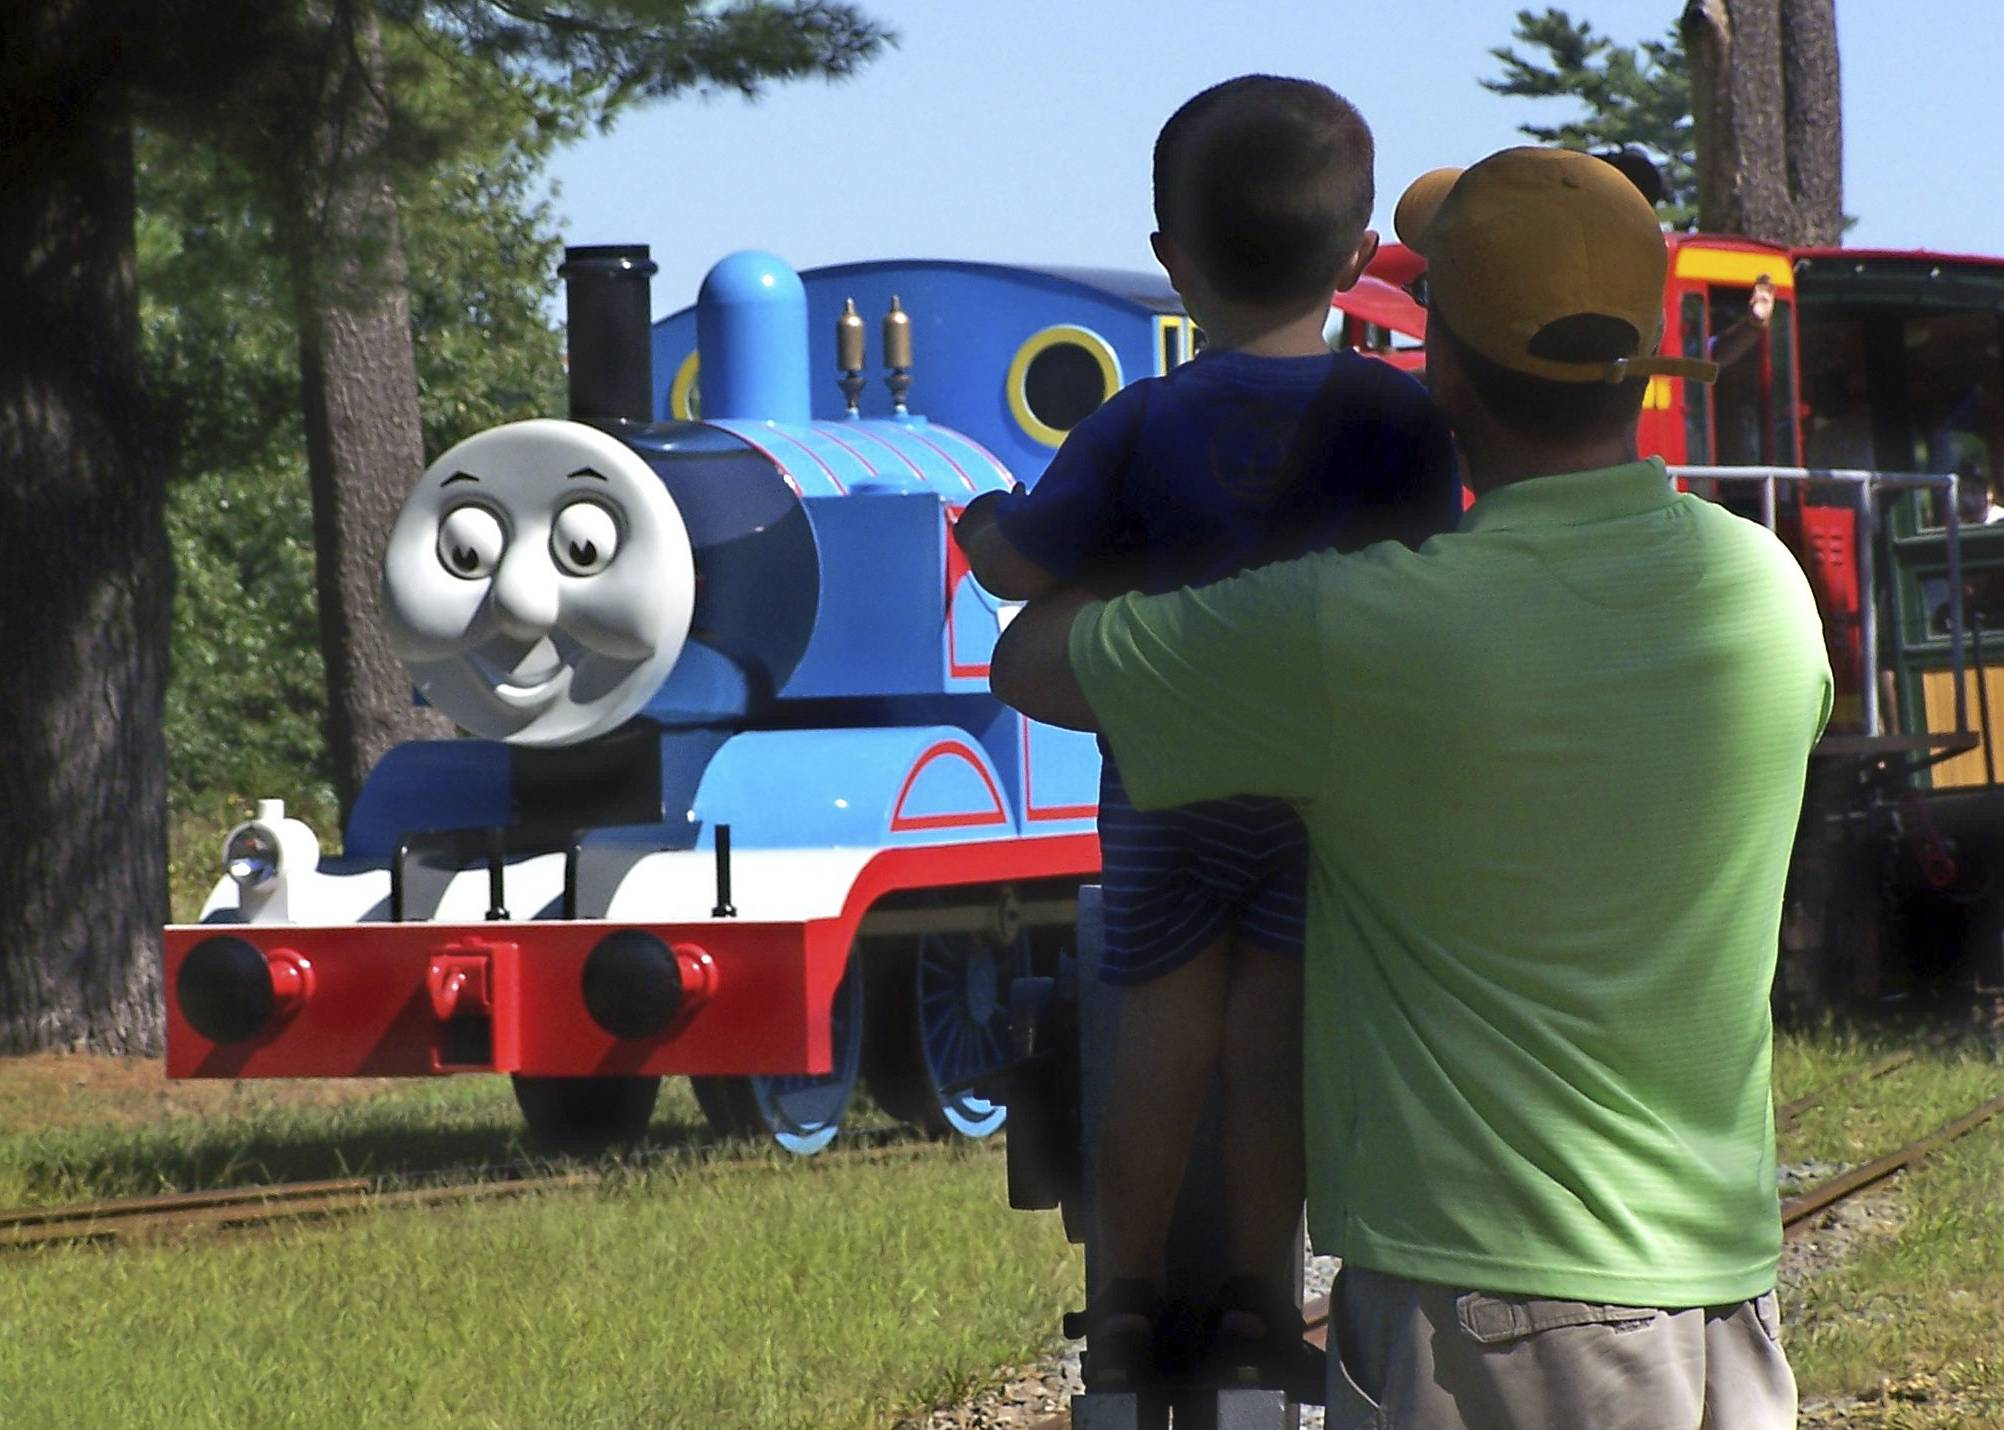 A father and son watch Thomas the Tank Engine roll down the track at an annual Day Out with Thomas event at the Edaville USA theme park in Carver, Mass. Groundbreaking for the first permanent Thomas Land in the U.S. is set for July 2014 at Edaville USA, and is expected to be open for business in the summer of 2015.